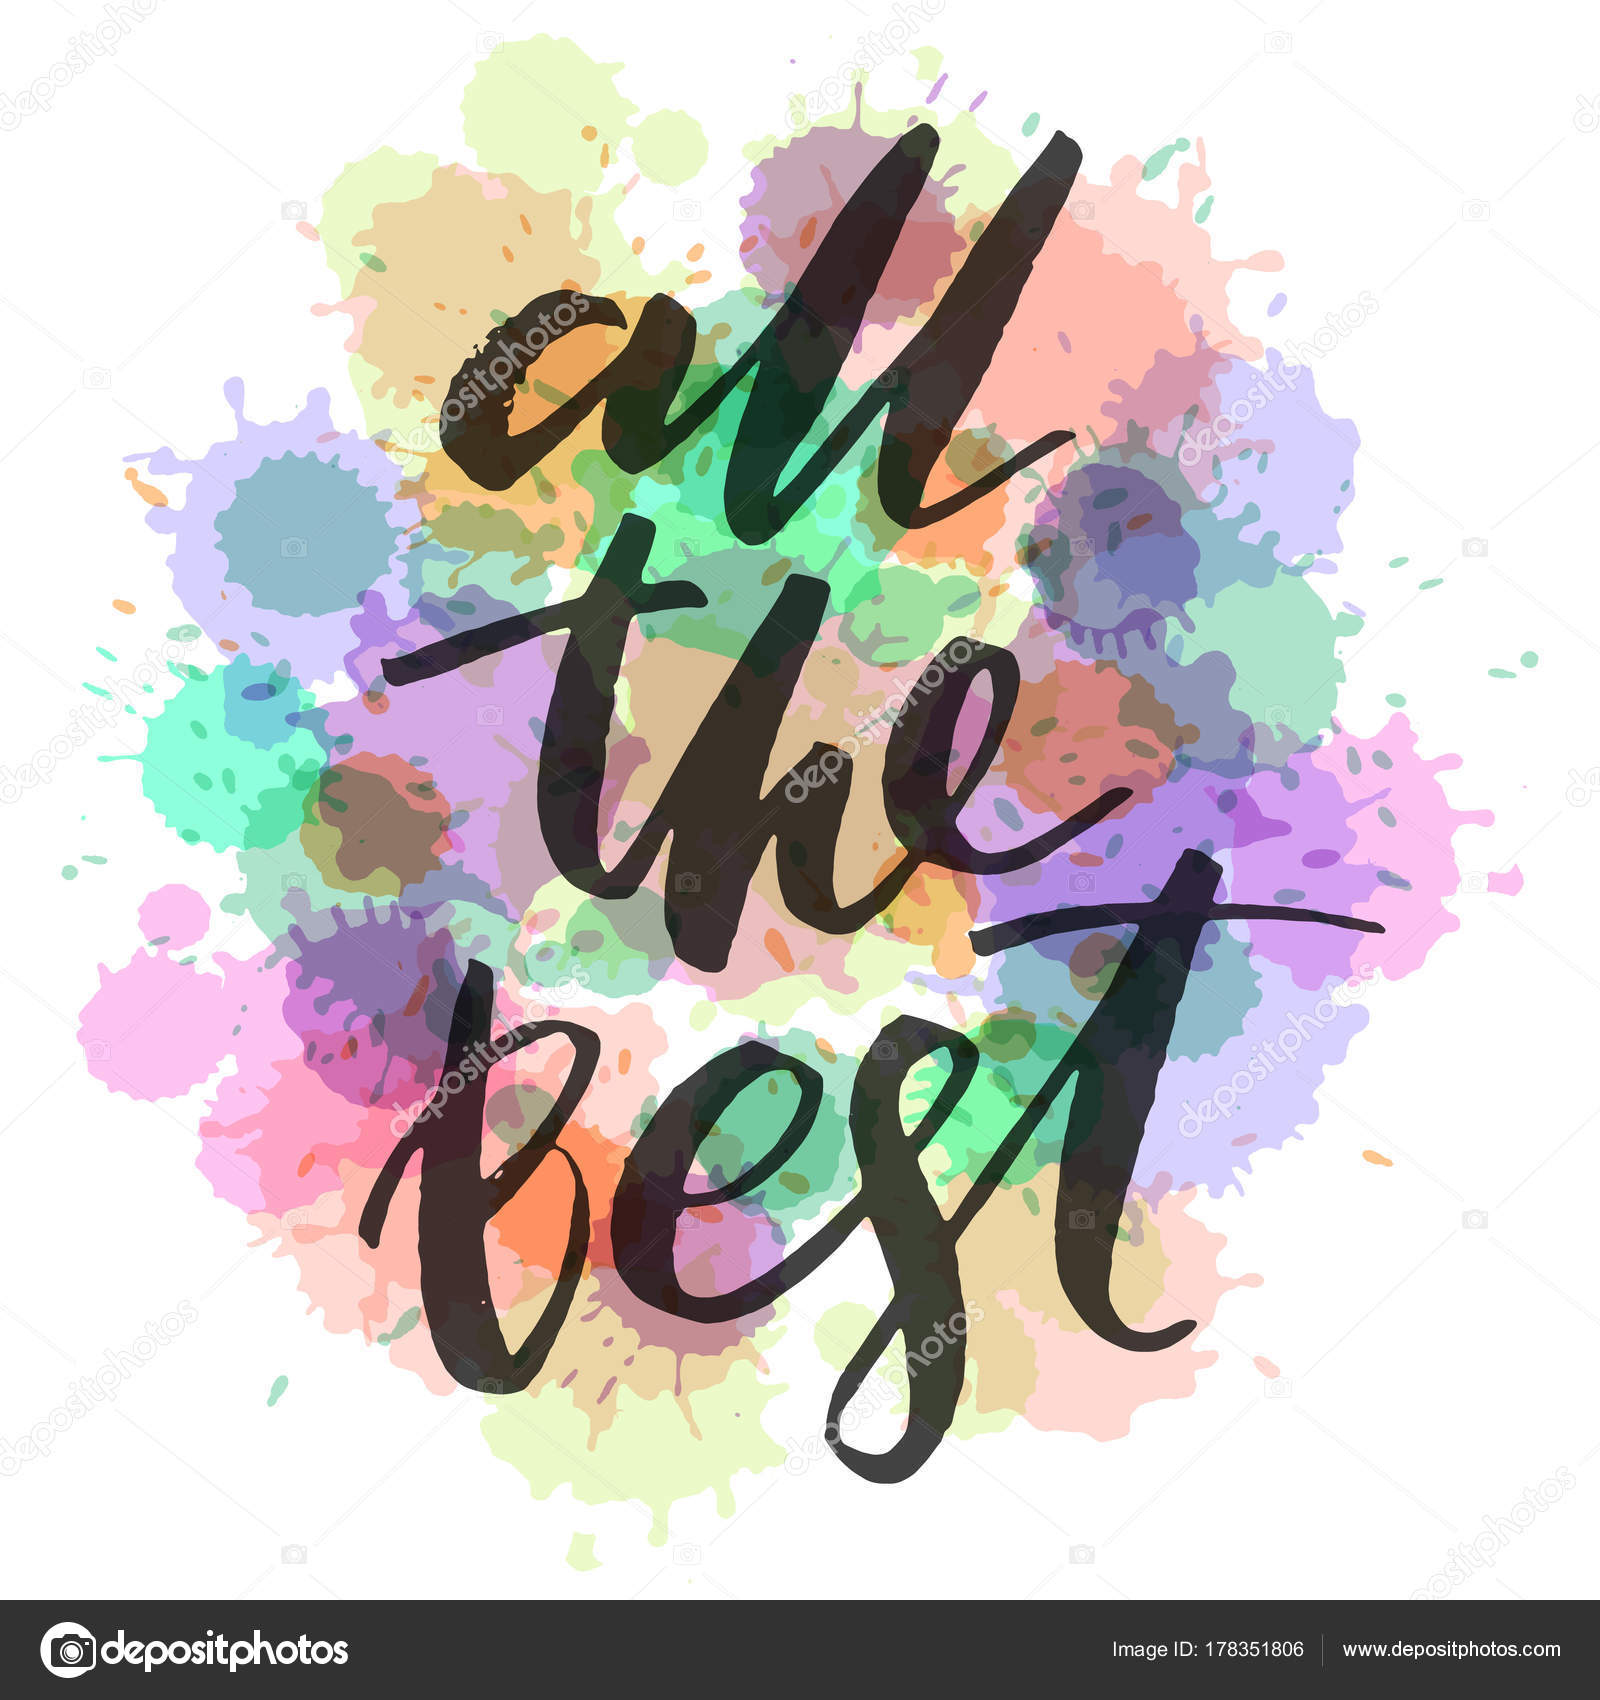 All The Best Hand Drawn Creative Calligraphy And Brush Pen